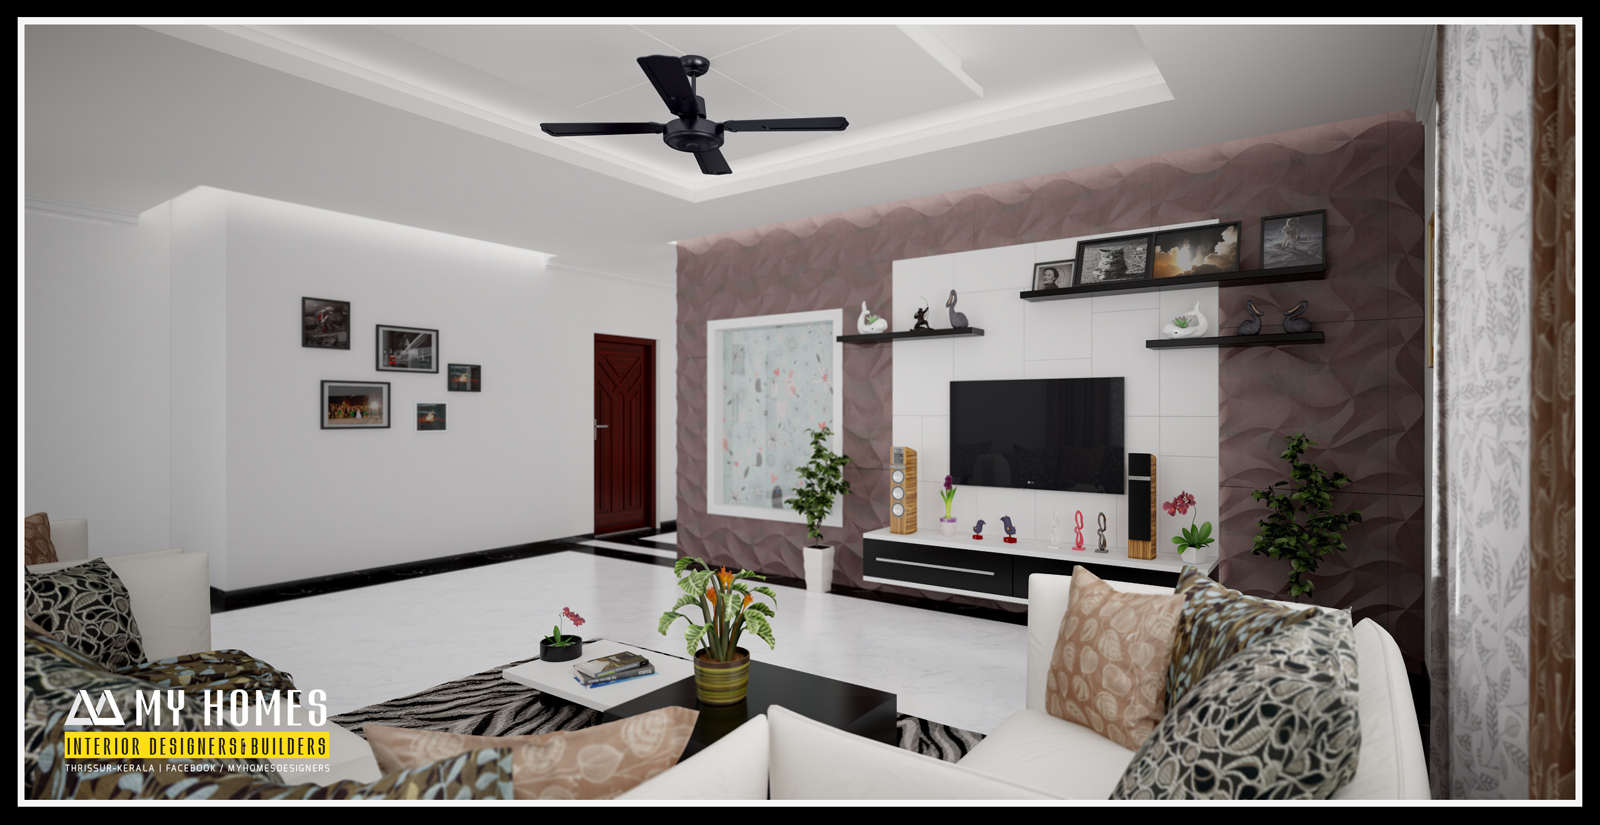 Kerala interior design ideas for homes house design in india for Model living room ideas